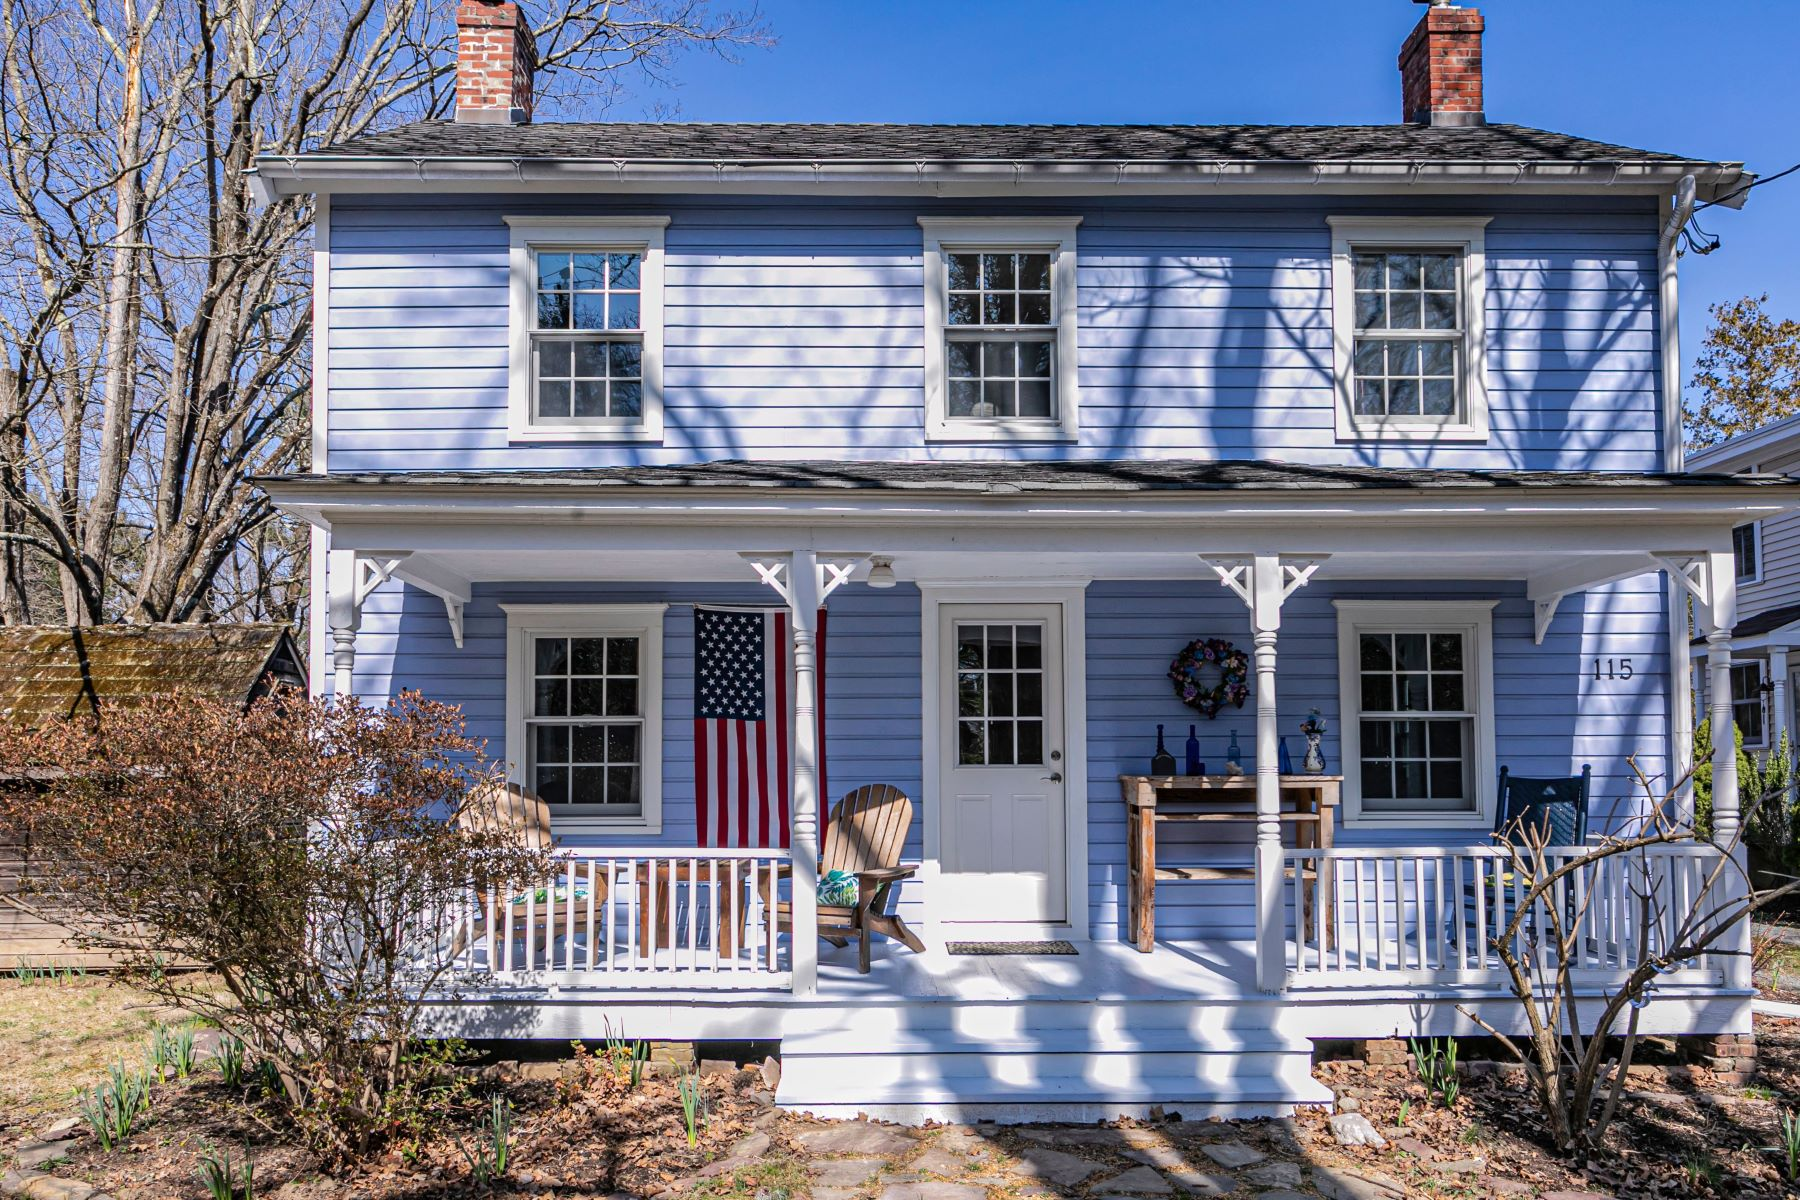 Property for Sale at A True Colonial Home Full of Cheerful Surprises 115 Mountain Avenue, Princeton, New Jersey 08540 United States